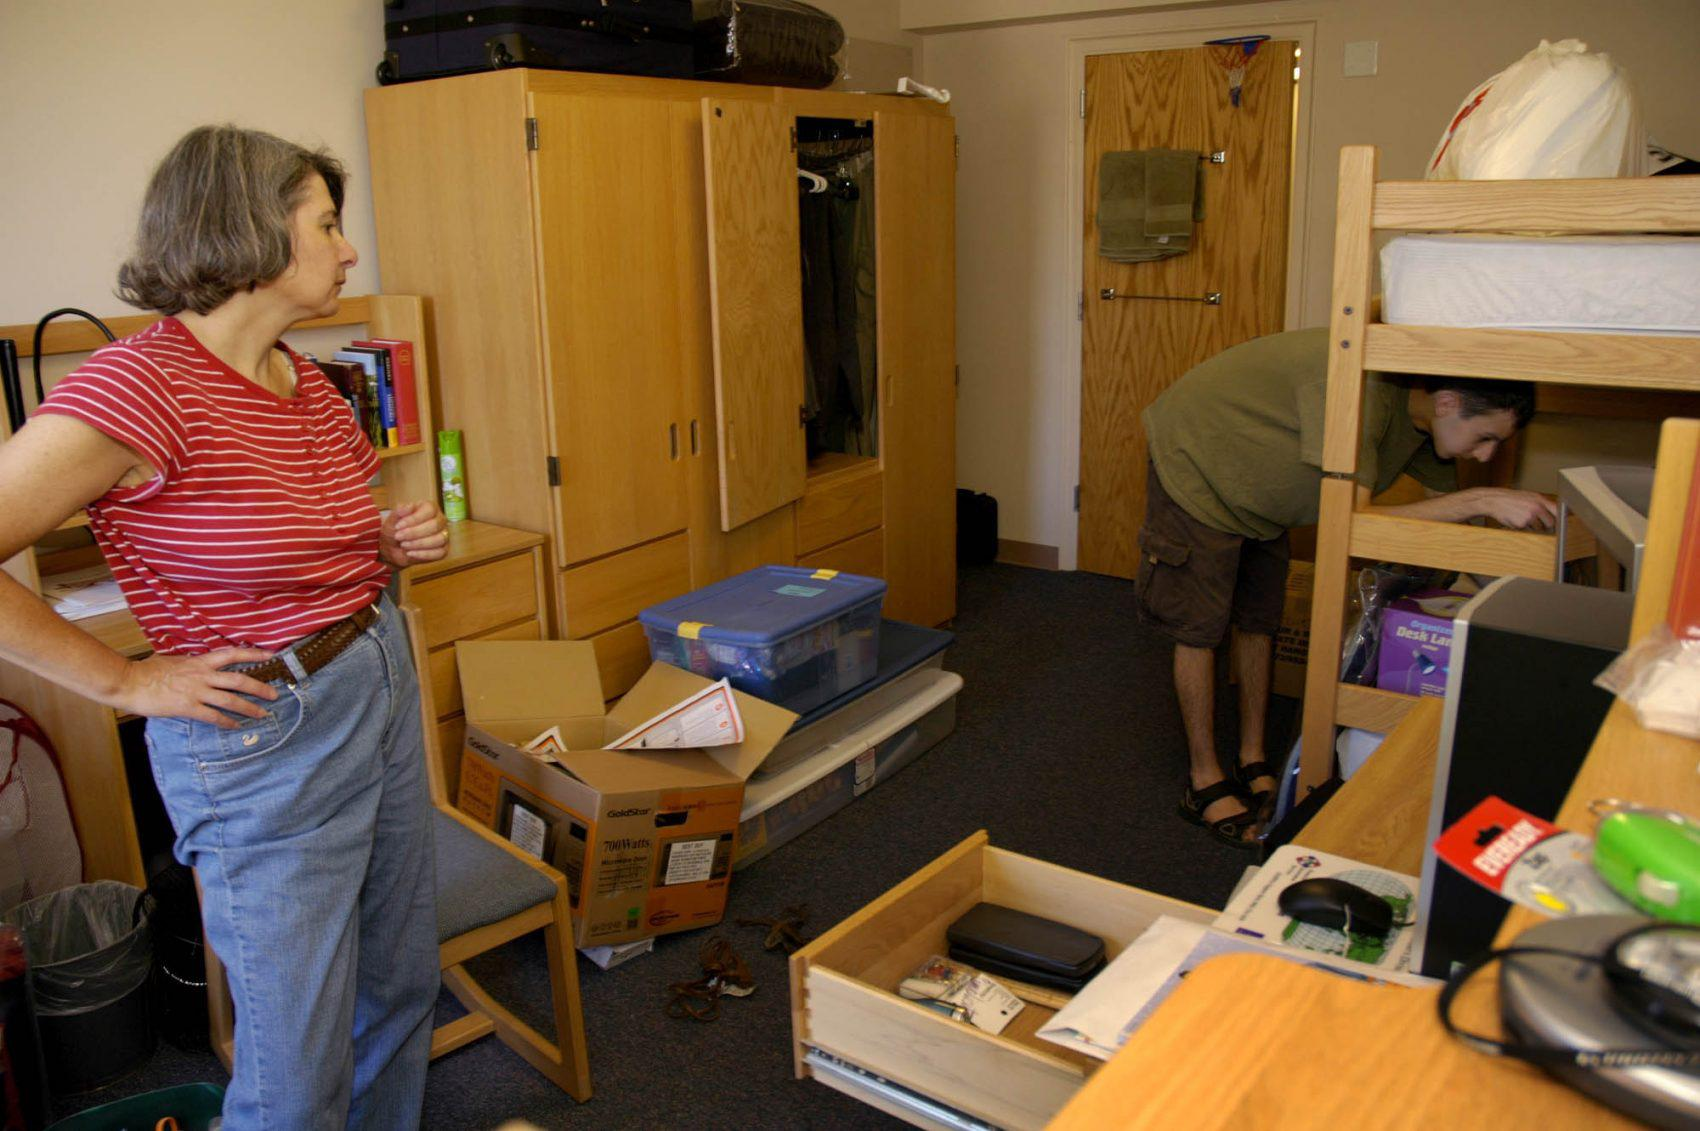 June Banker Helps Her Son, Michael, Move Into His Dorm Room At Colgate  University In Hamilton, N.Y., Thursday, Aug. 25, 2005. (Kevin Rivoli/AP) Part 92